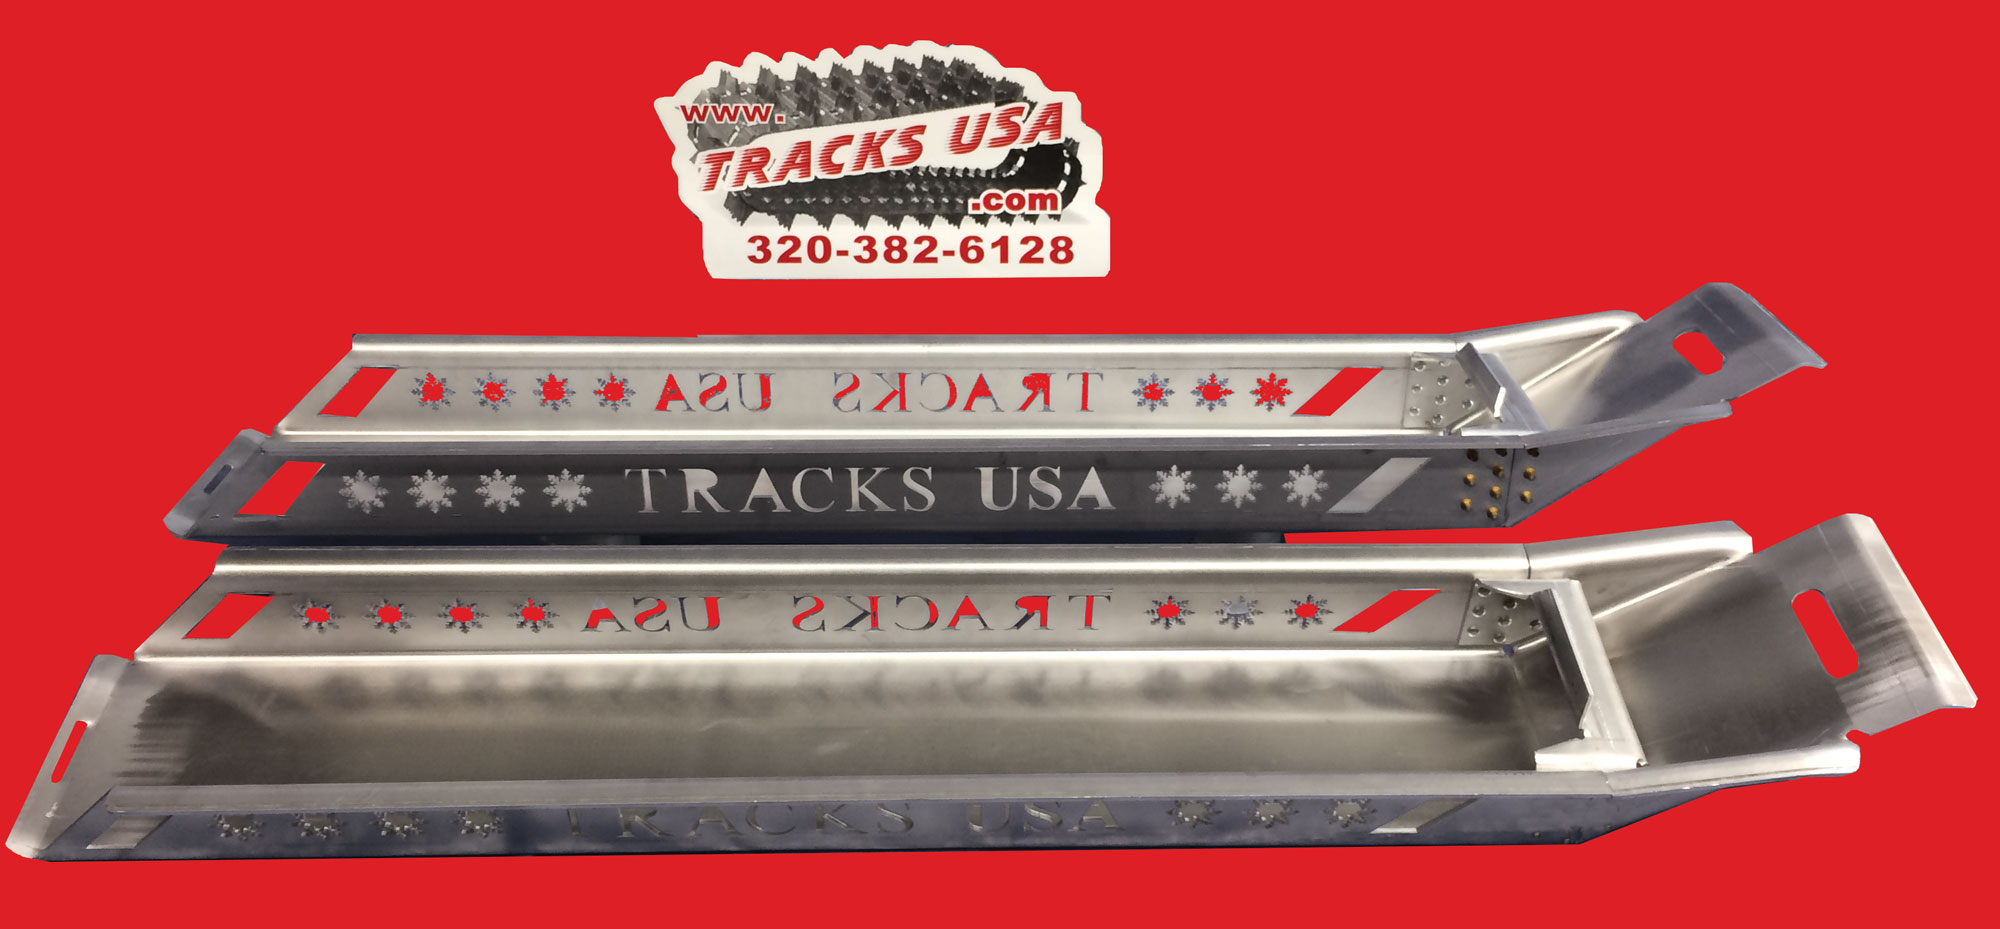 Tracks usa fish house skis for sale in lake lillian mn for Fish house skis